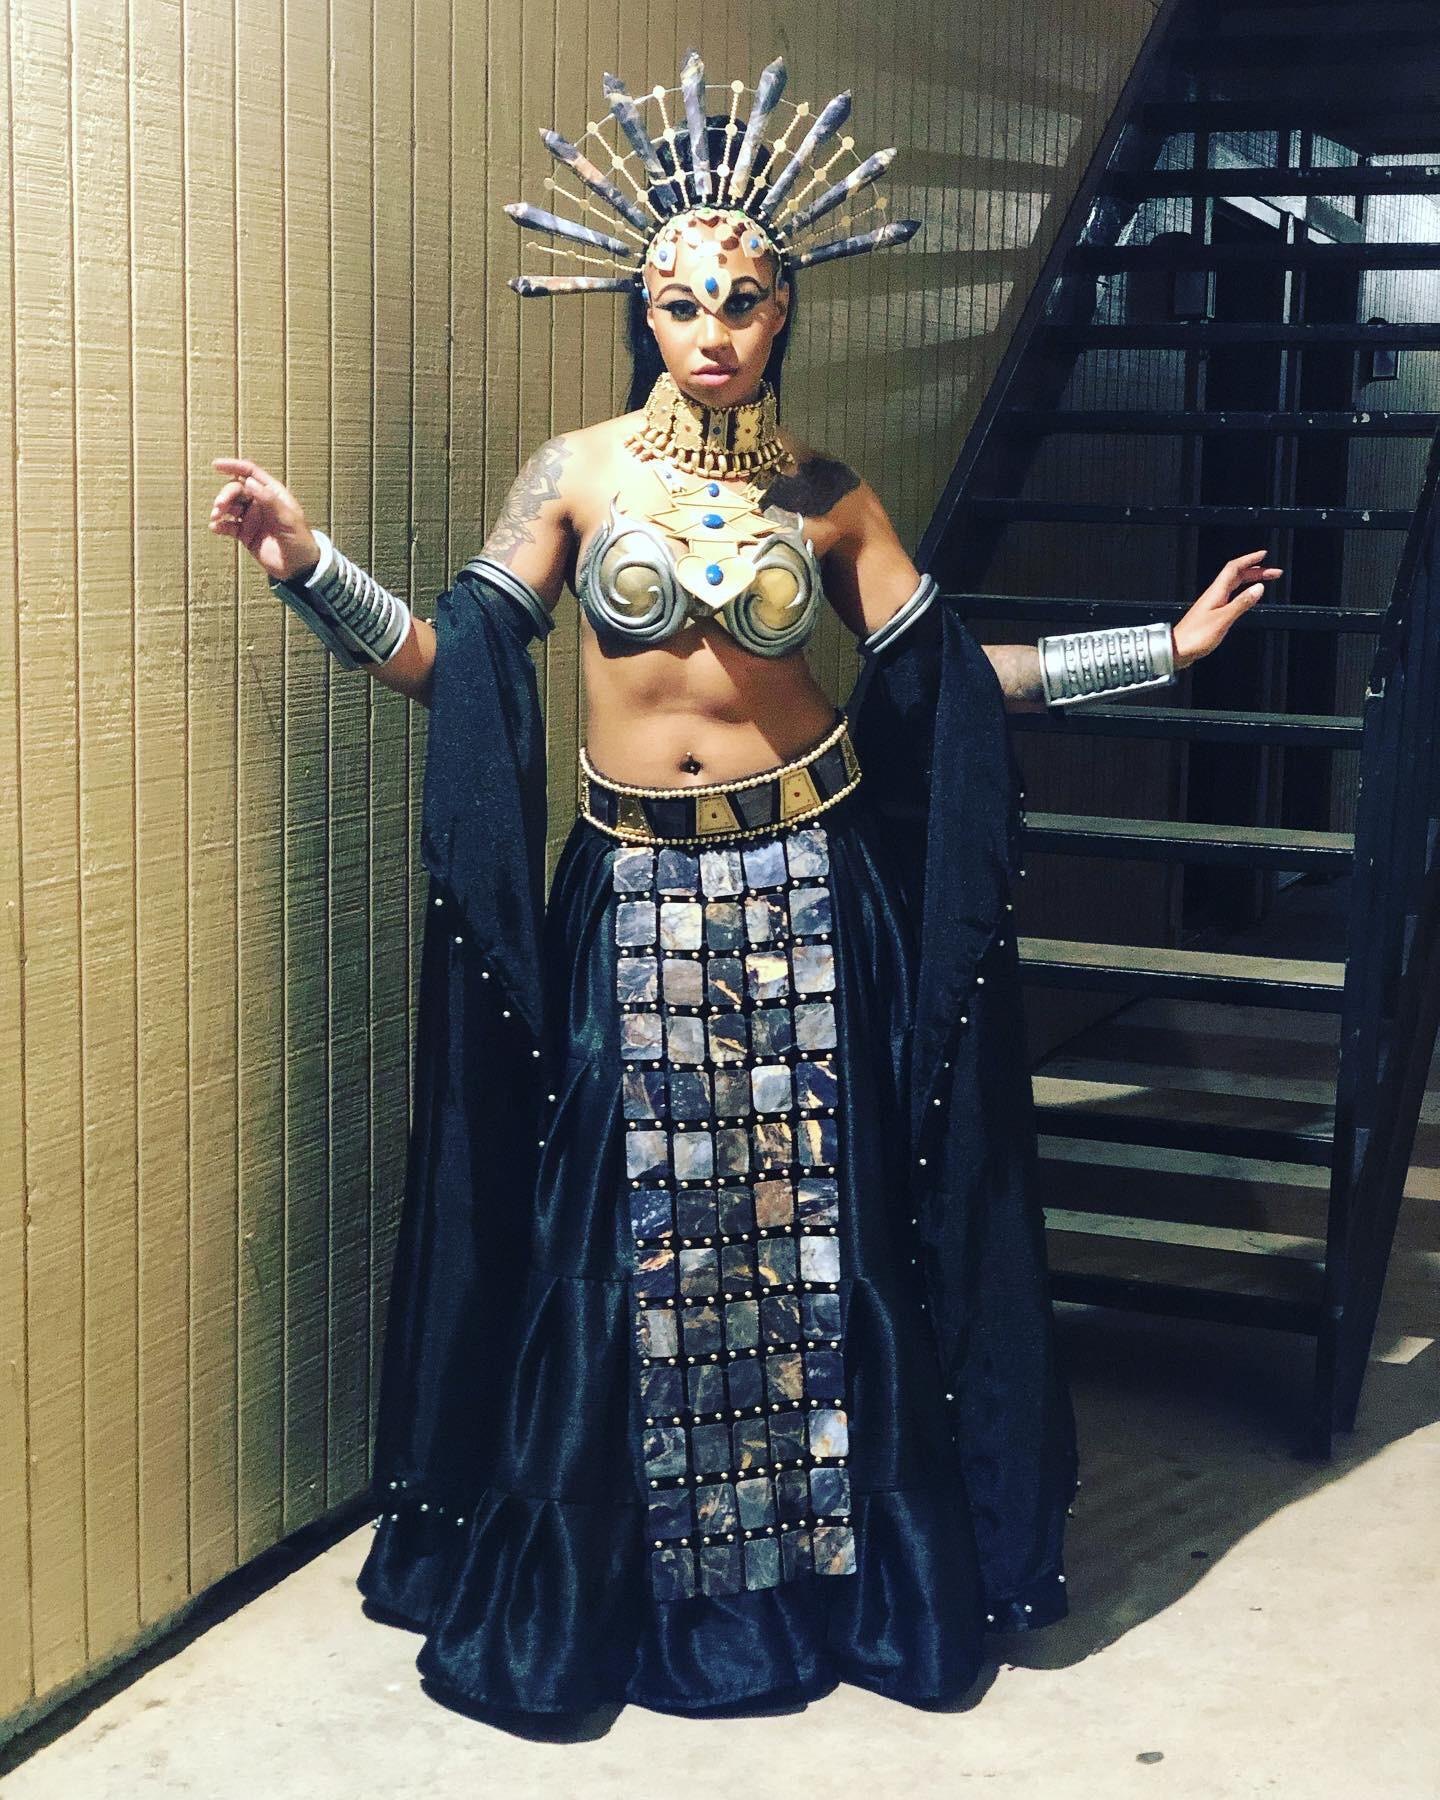 Akasha cosplay, made by NovocaineCosplay and modeled by Jade Henry